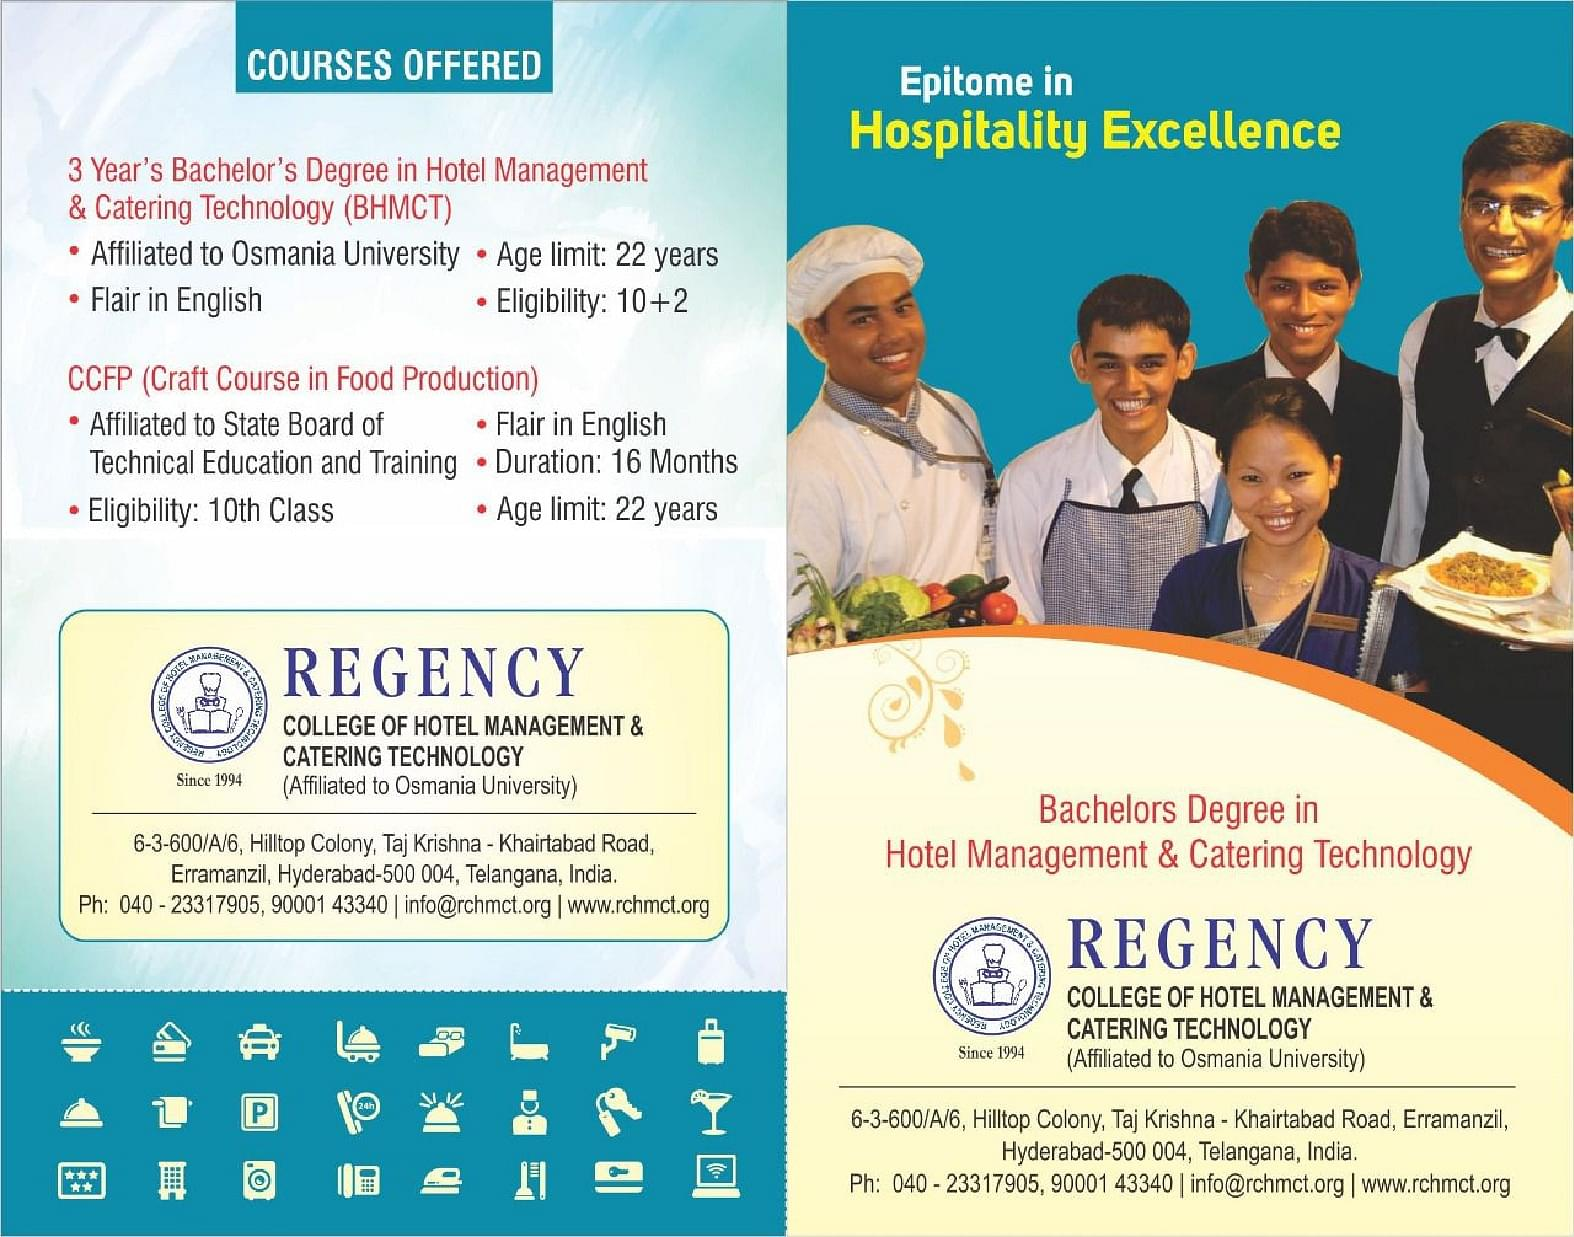 Regency College Of Hotel Management And Catering Technology